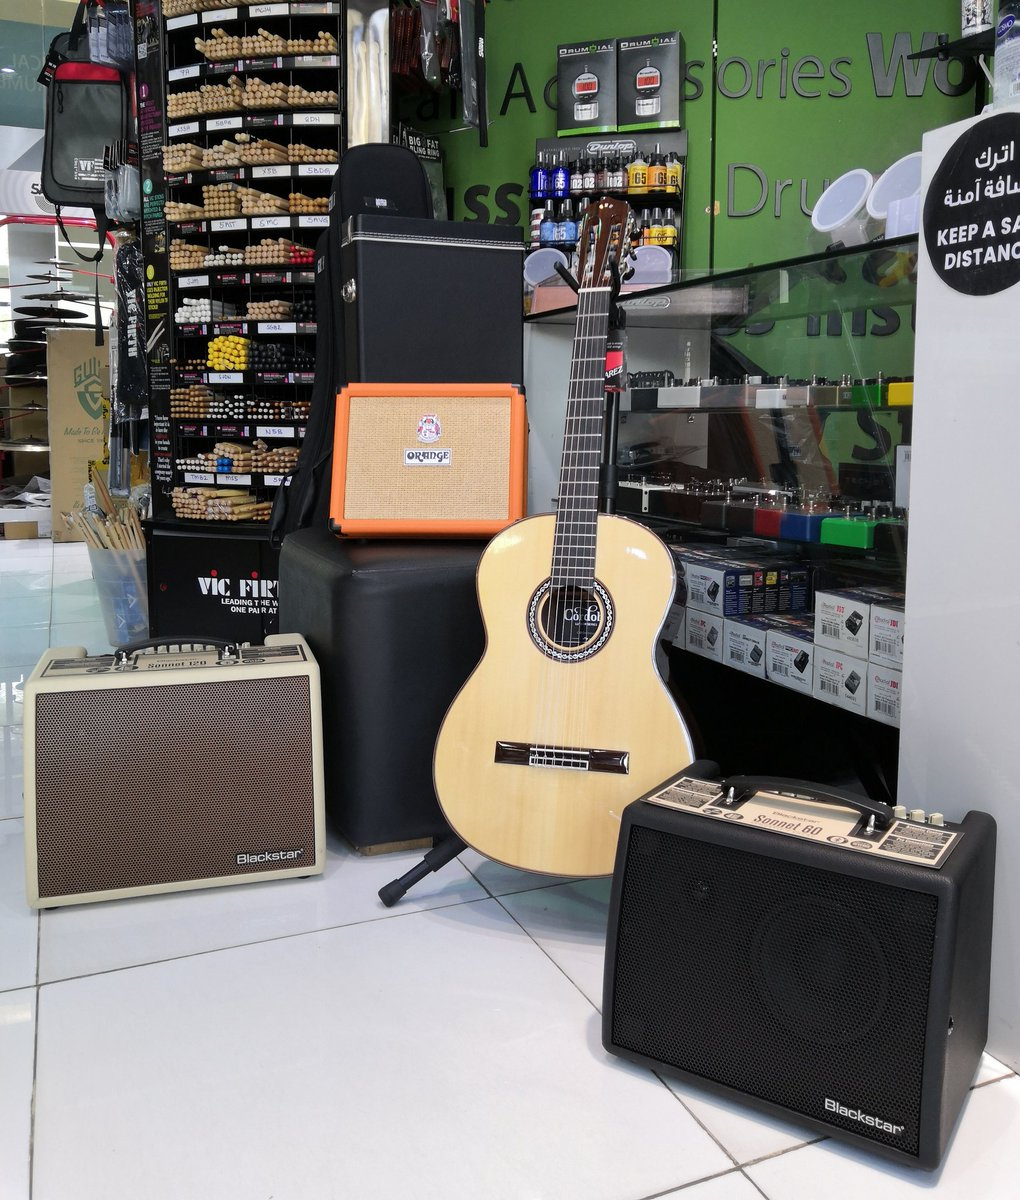 Check Out the Acoustic Line! @Blackstaramps Sonnet 60 & 120 and @OrangeAmps Crush Acoustic 30   Come on by and test them out!  Shop Online Now http://www.melodyhousemi.com   #guitarists #guitaramp #guitaramplifier #orangeamplifiers #blackstaramps #acousticguitar #acousticamppic.twitter.com/0VIoCbGc8z